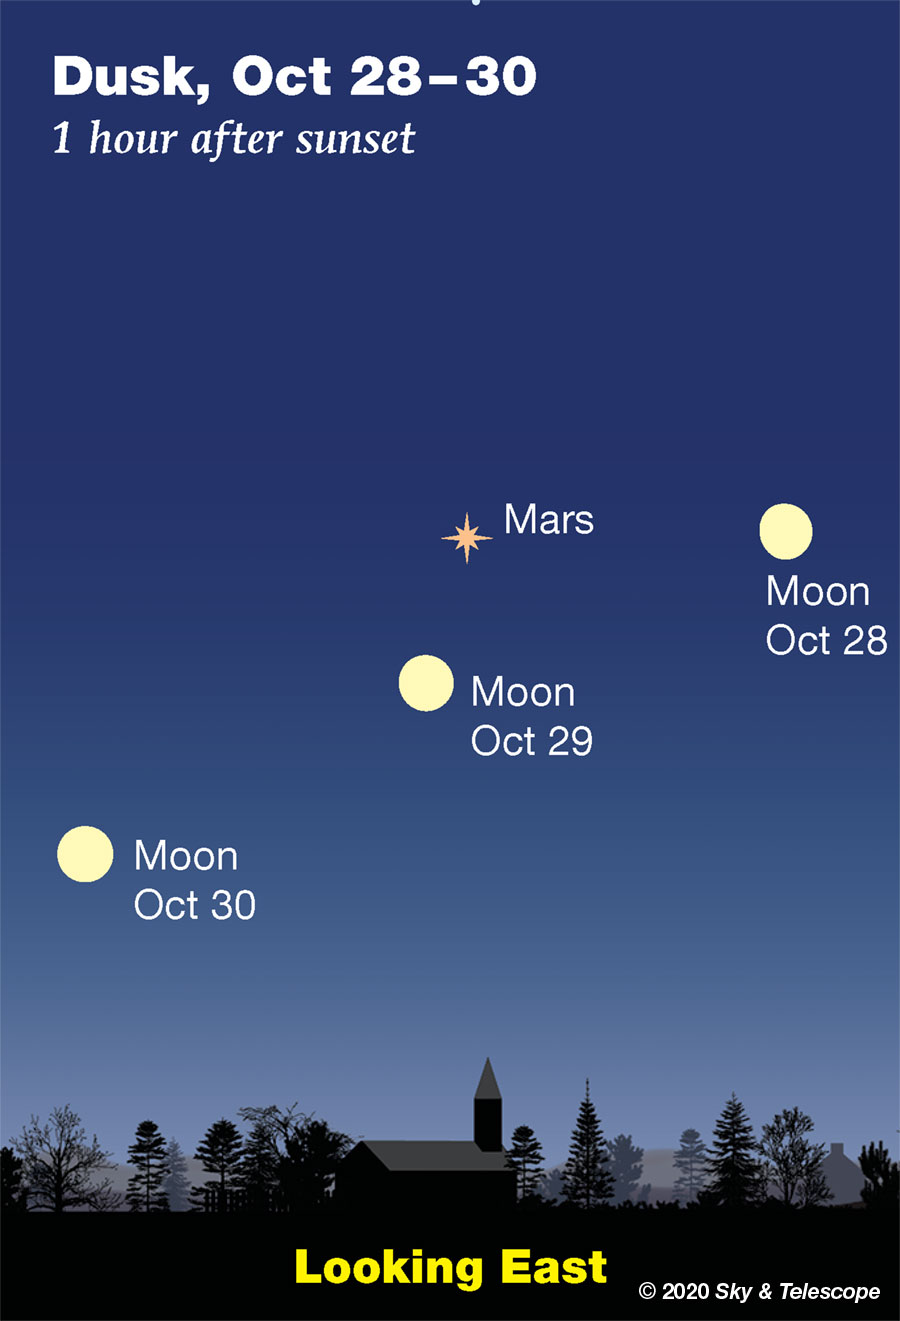 Moon and Mars, Oct. 28-30, 2020